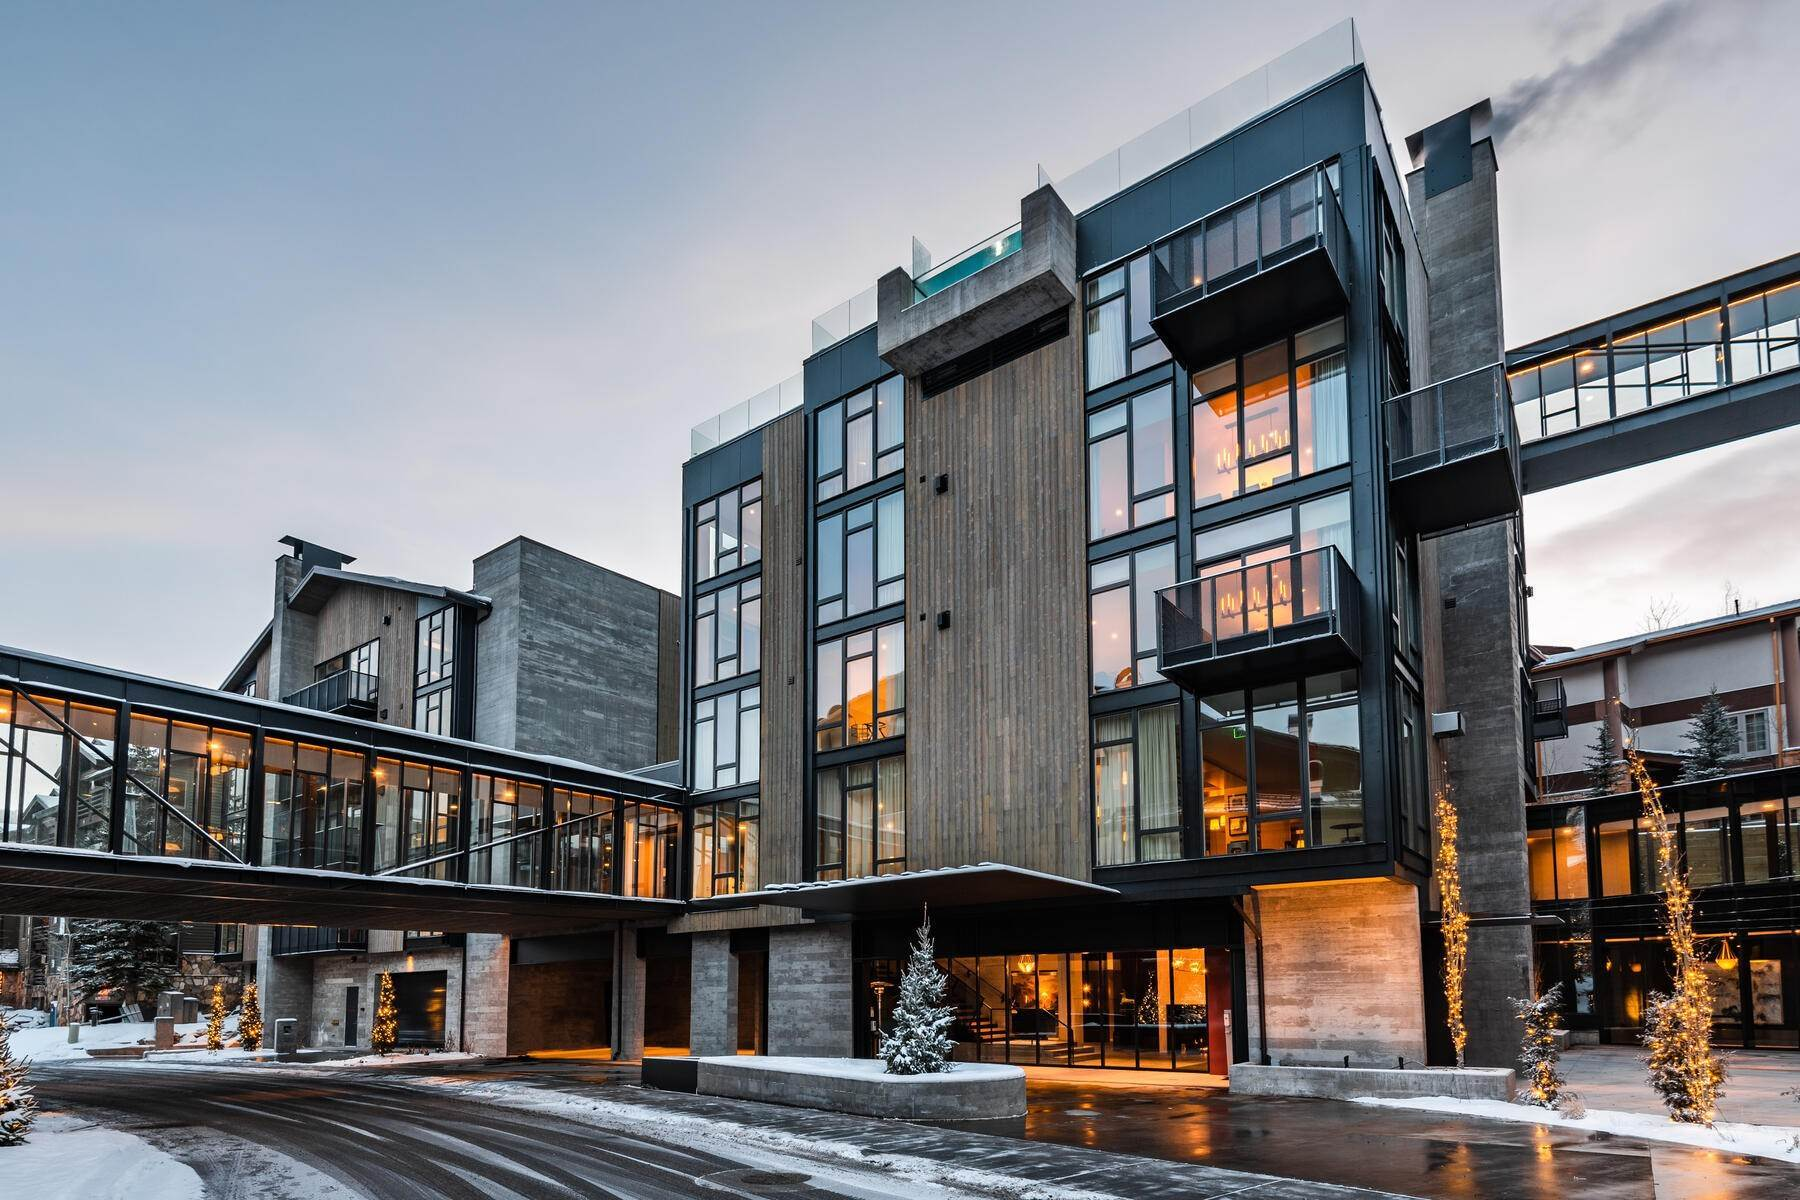 Condominiums for Sale at Boutique Luxury Hotel Residences in Prime Deer Valley Silver Lake Village 7520 Royal Street #221 Park City, Utah 84060 United States